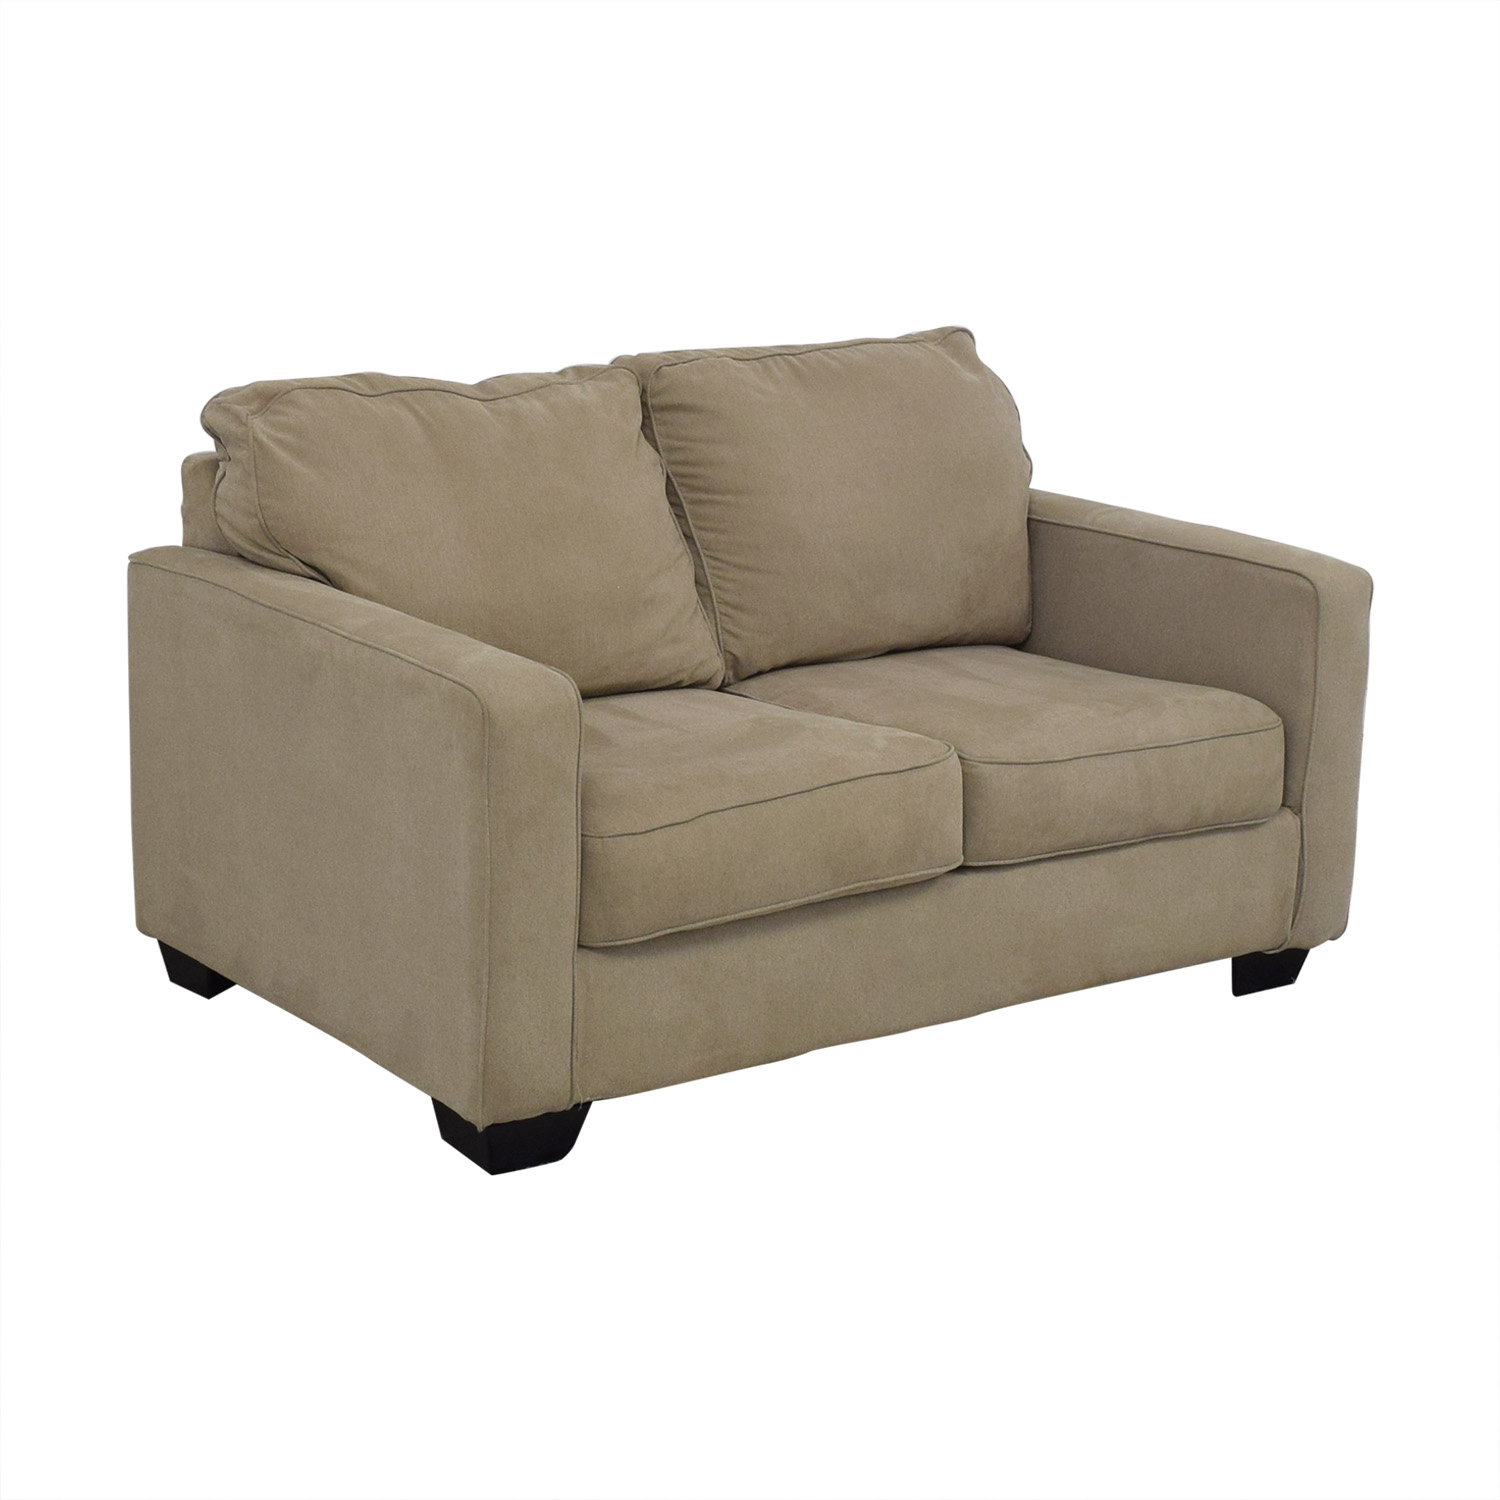 Jennifer Furniture Alenya Loveseat sale